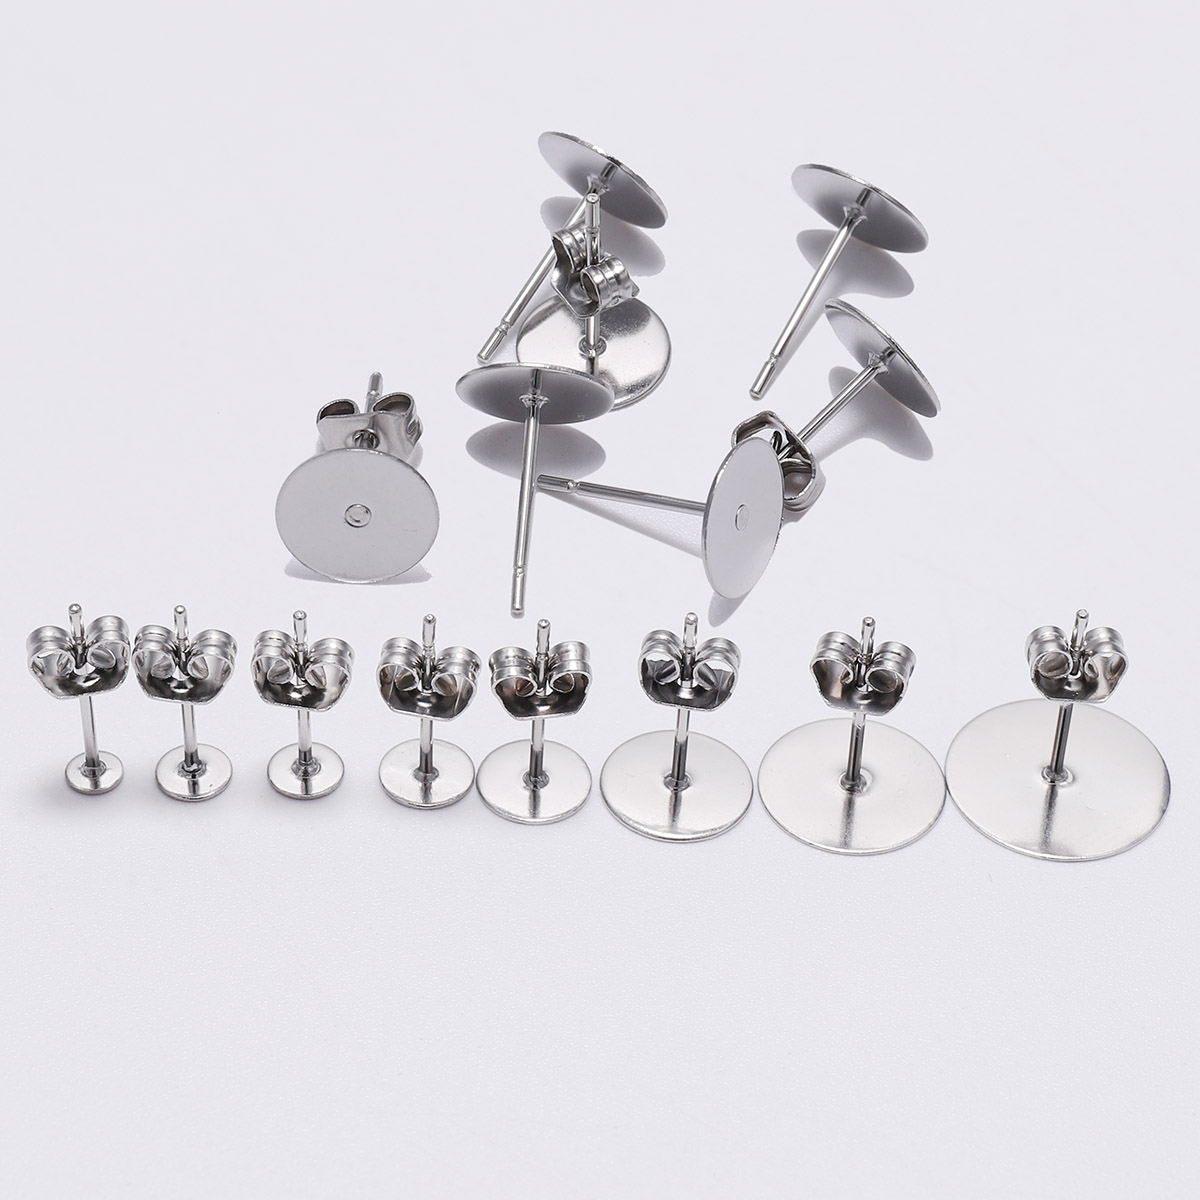 20-100pcs/lot 3-12mm Stainless Steel Blank Post Earring Stud Base Pins With Earring Plug Supplies For DIY Jewelry Making